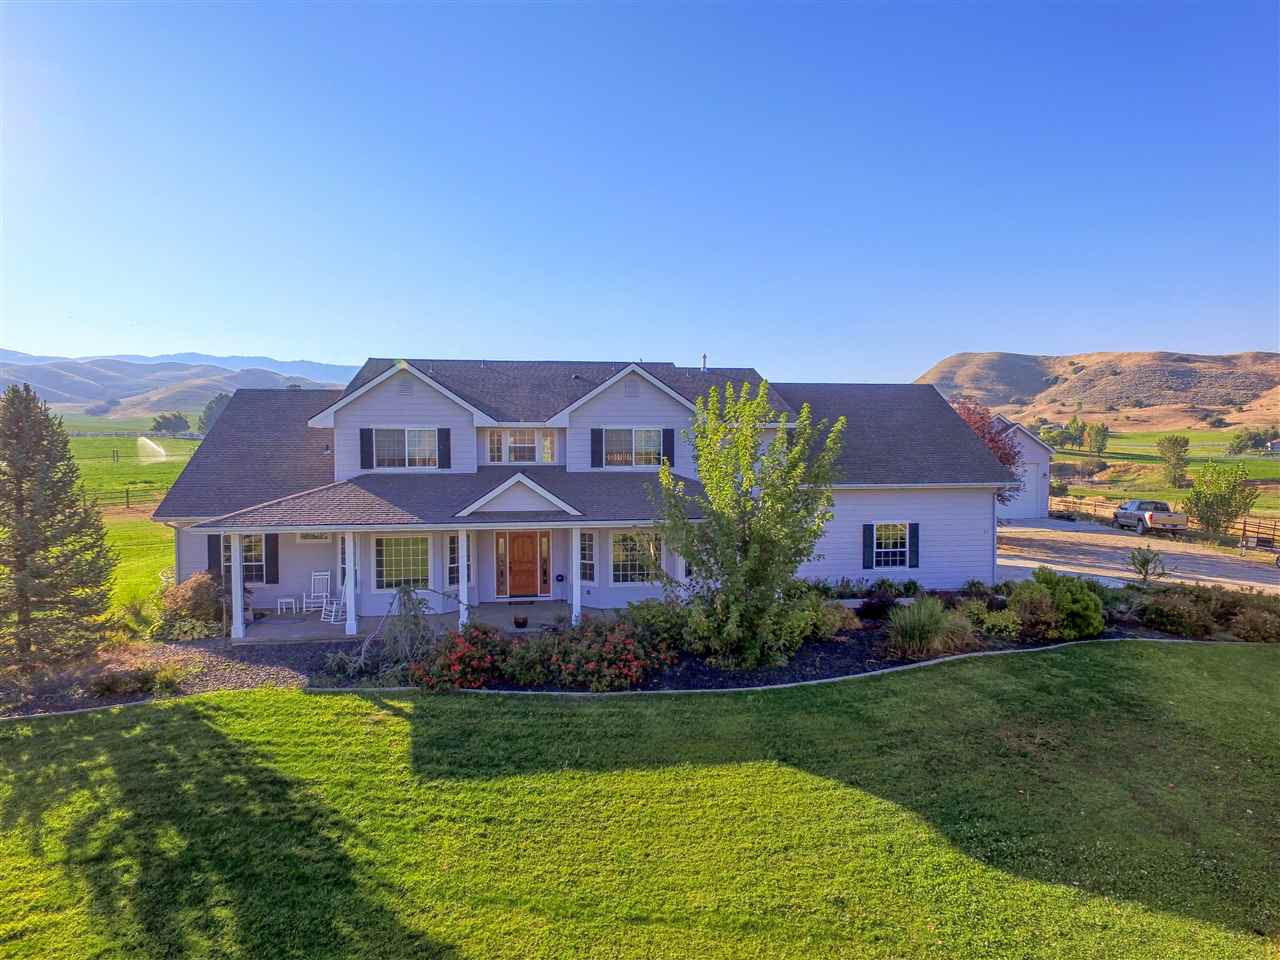 37 Waverly Dr., Horseshoe Bend, ID 83629